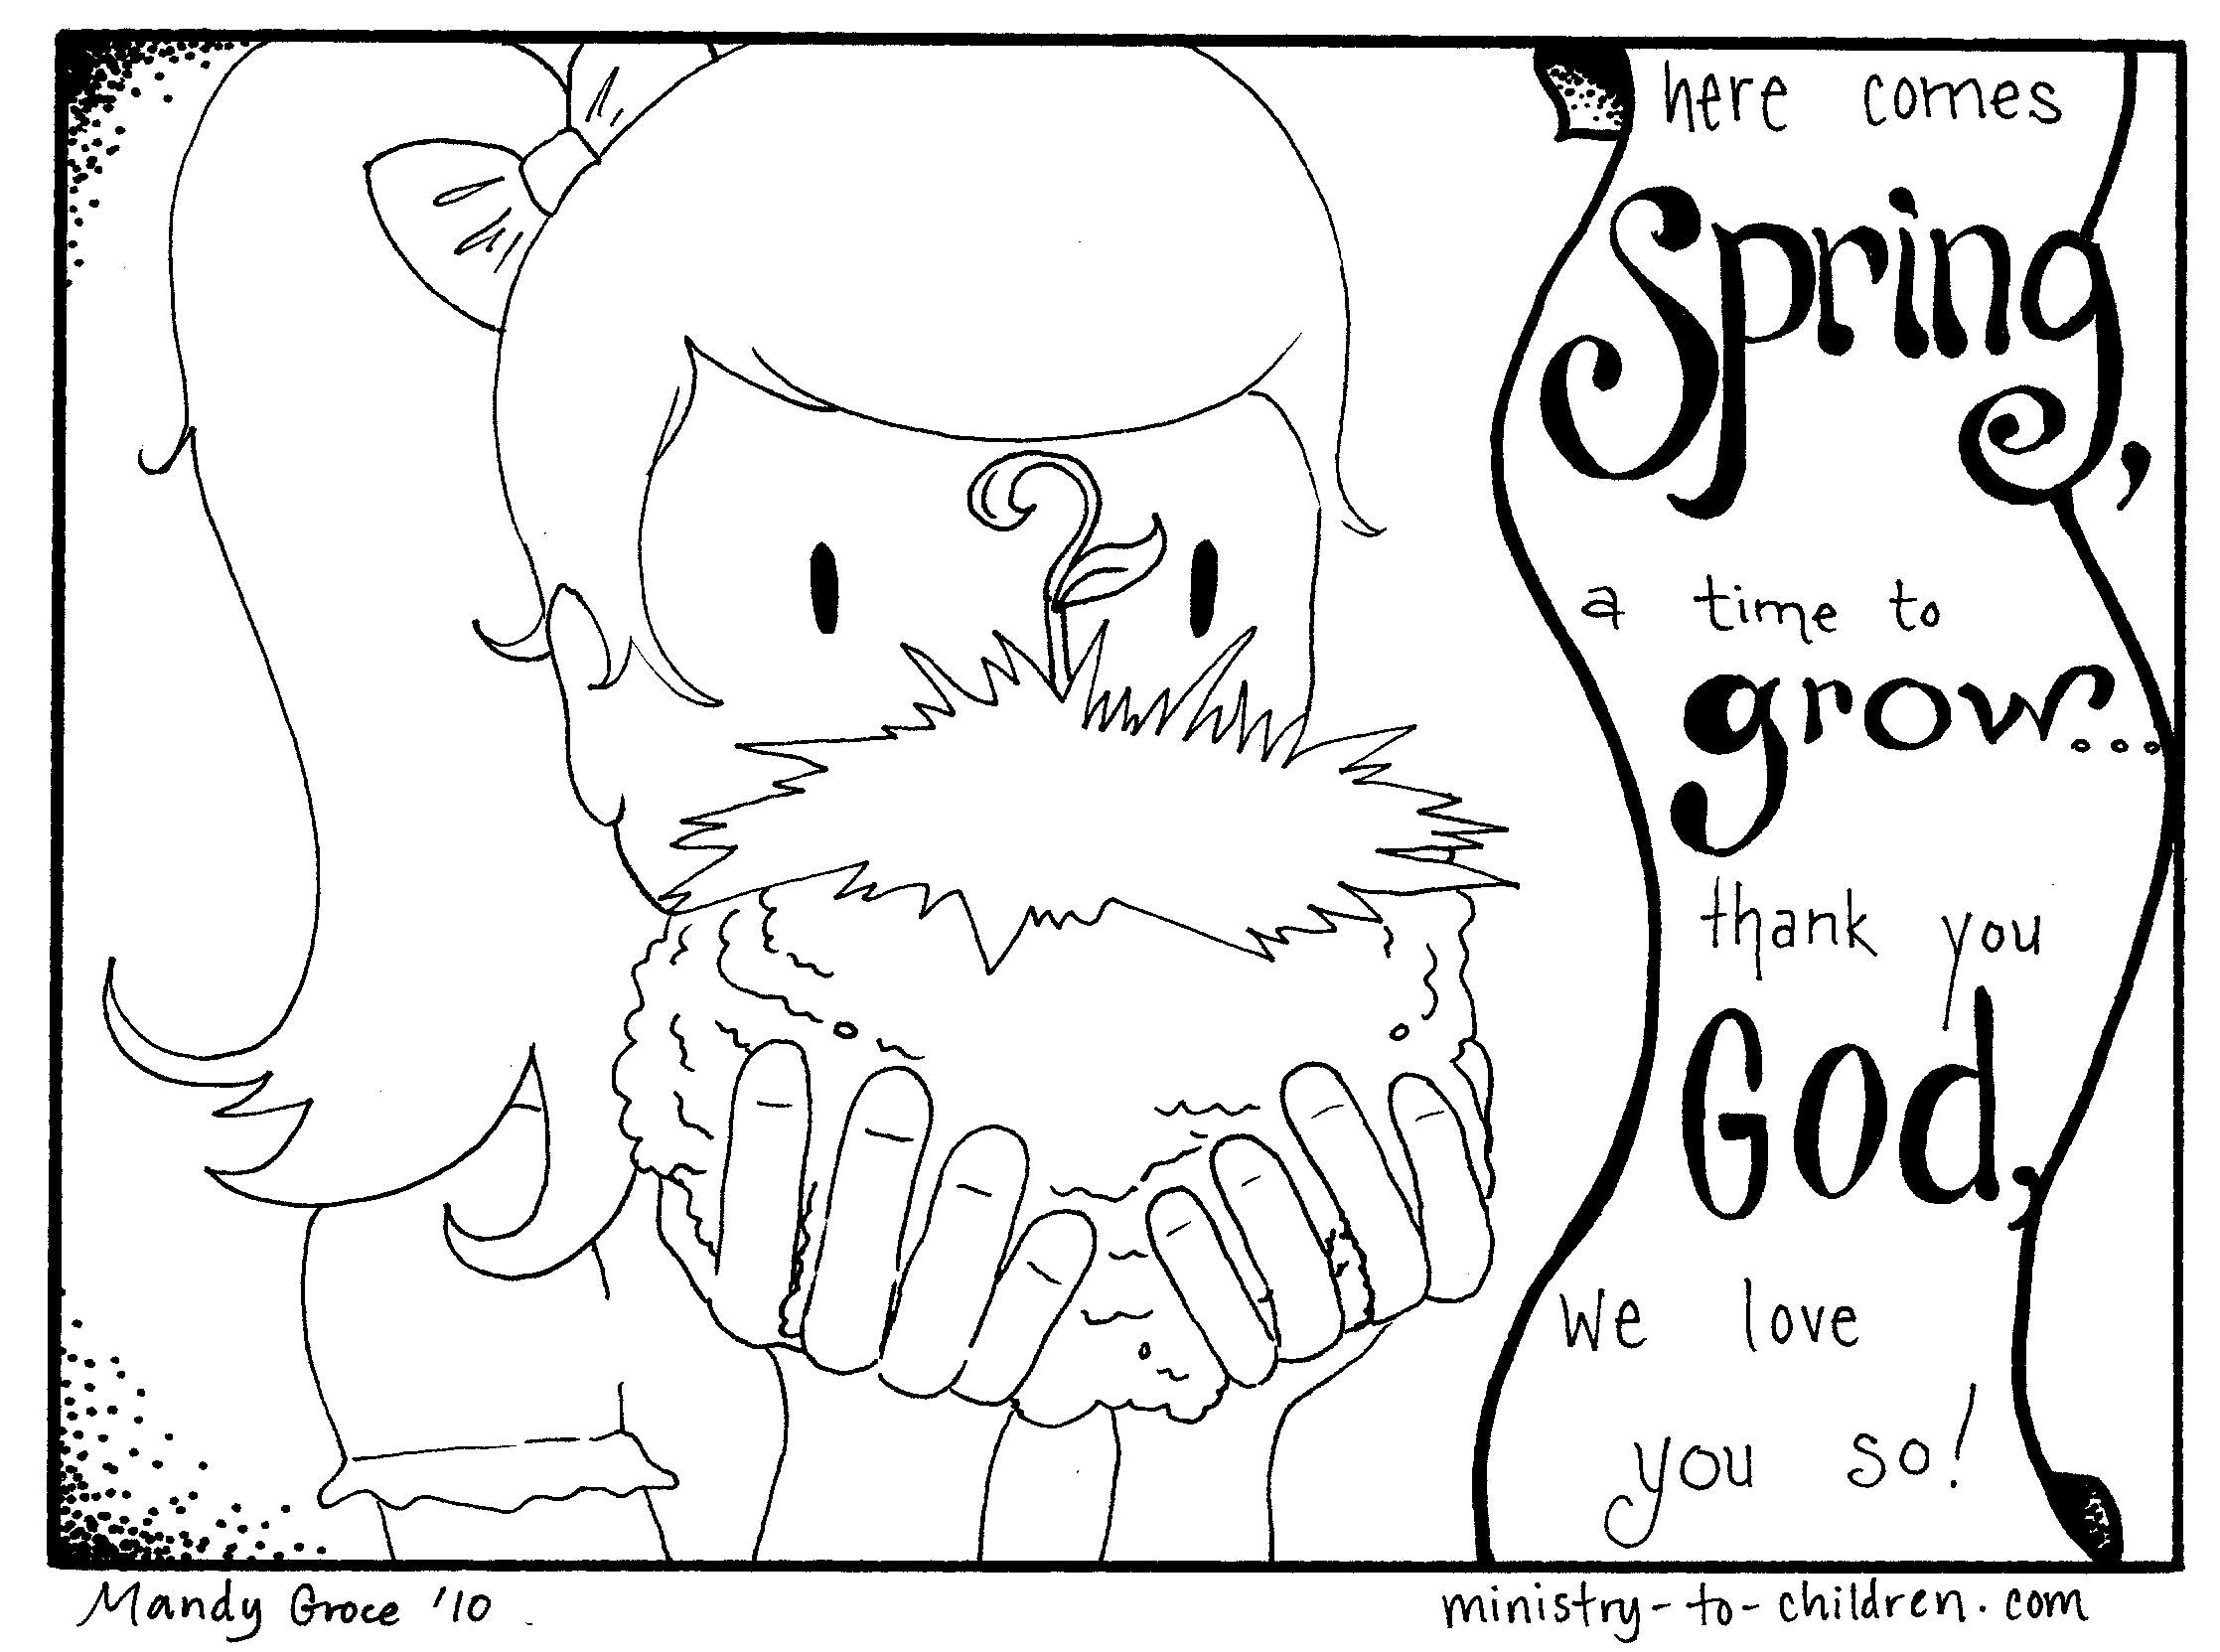 Pdf Coloring Pages For Kids Coloring Ideas Printable Spring Coloring Pages For Preschoolers